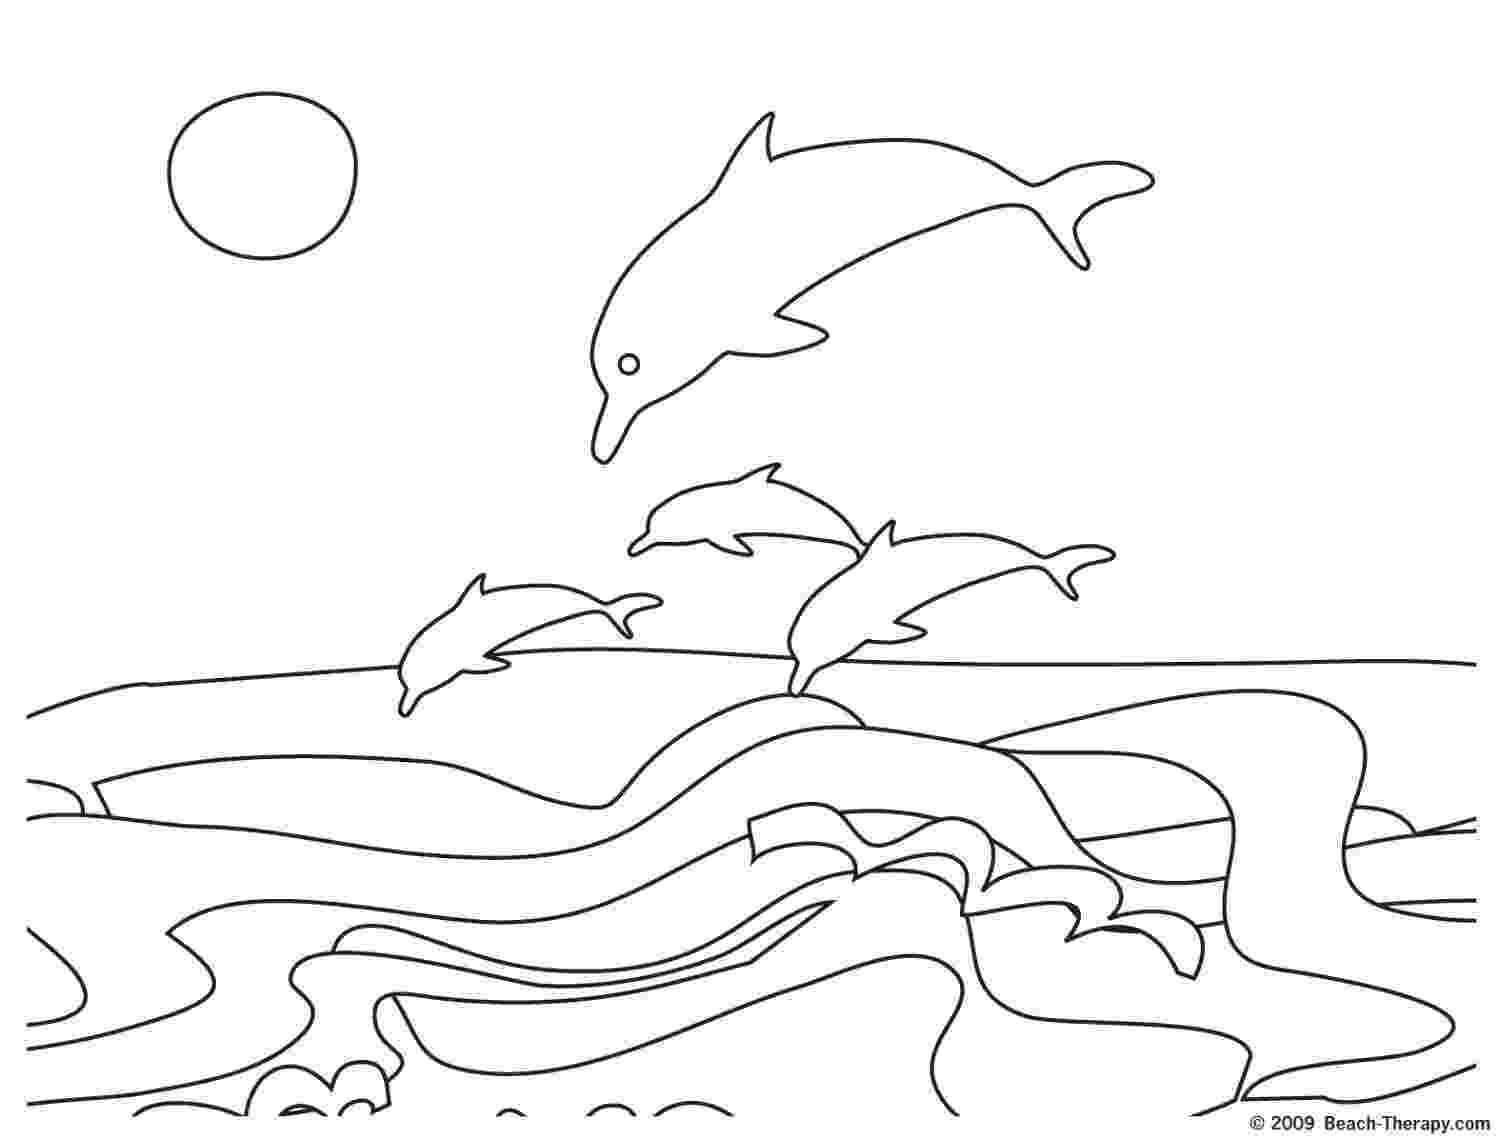 picture of dolphins to color hello kitty rides a dolphin coloring page free printable color picture to dolphins of